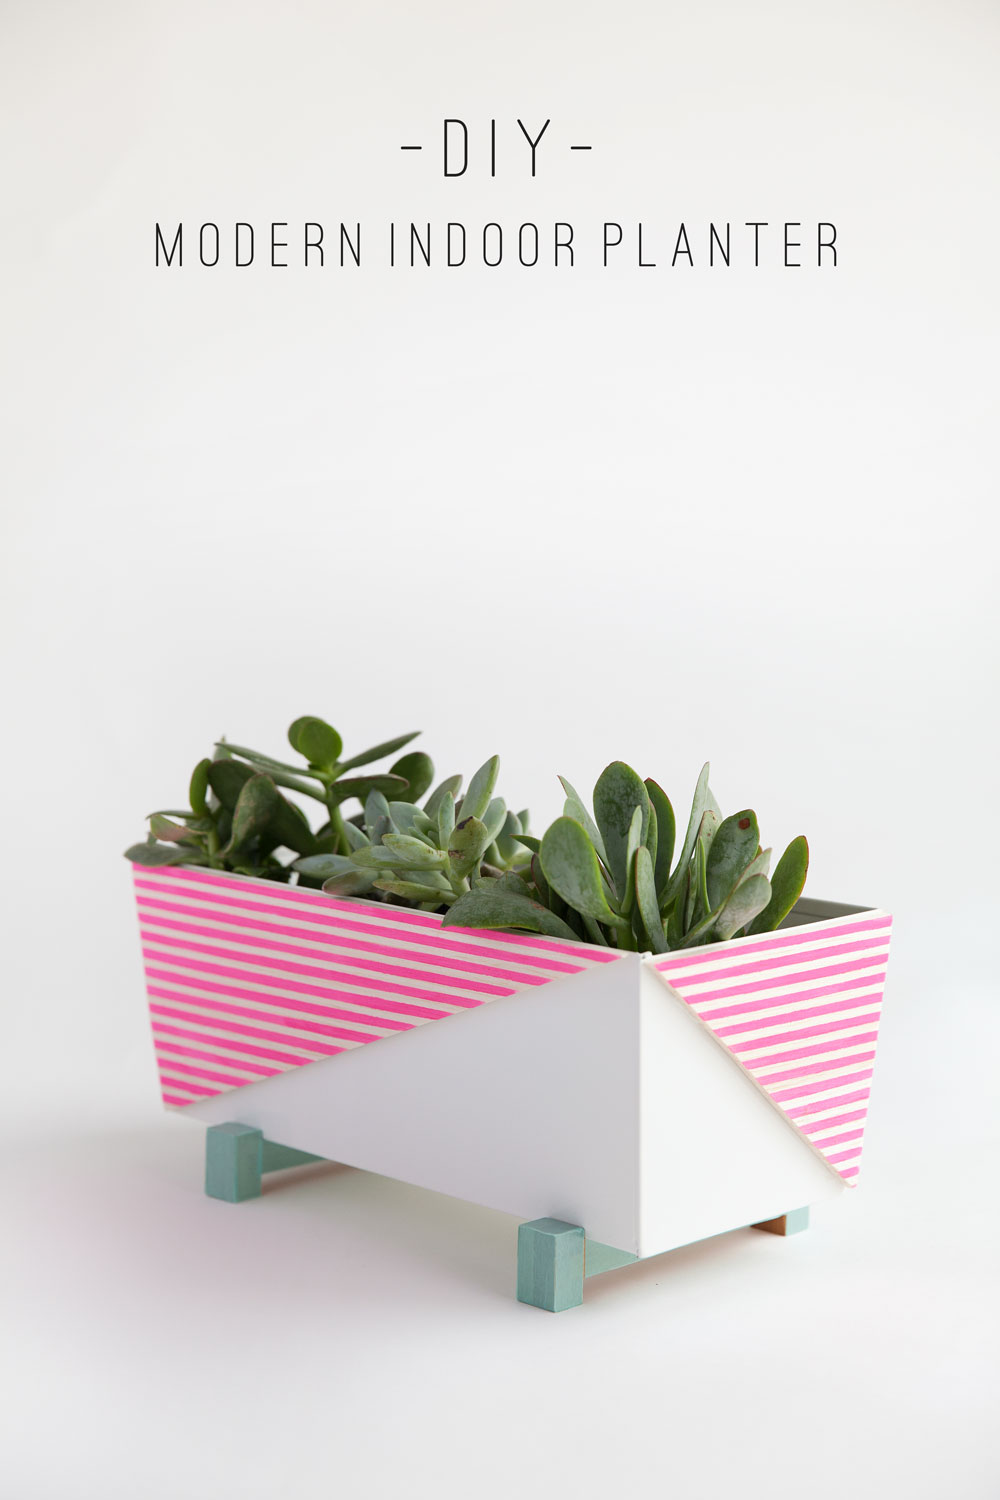 modern-indoor-planter-diy-text